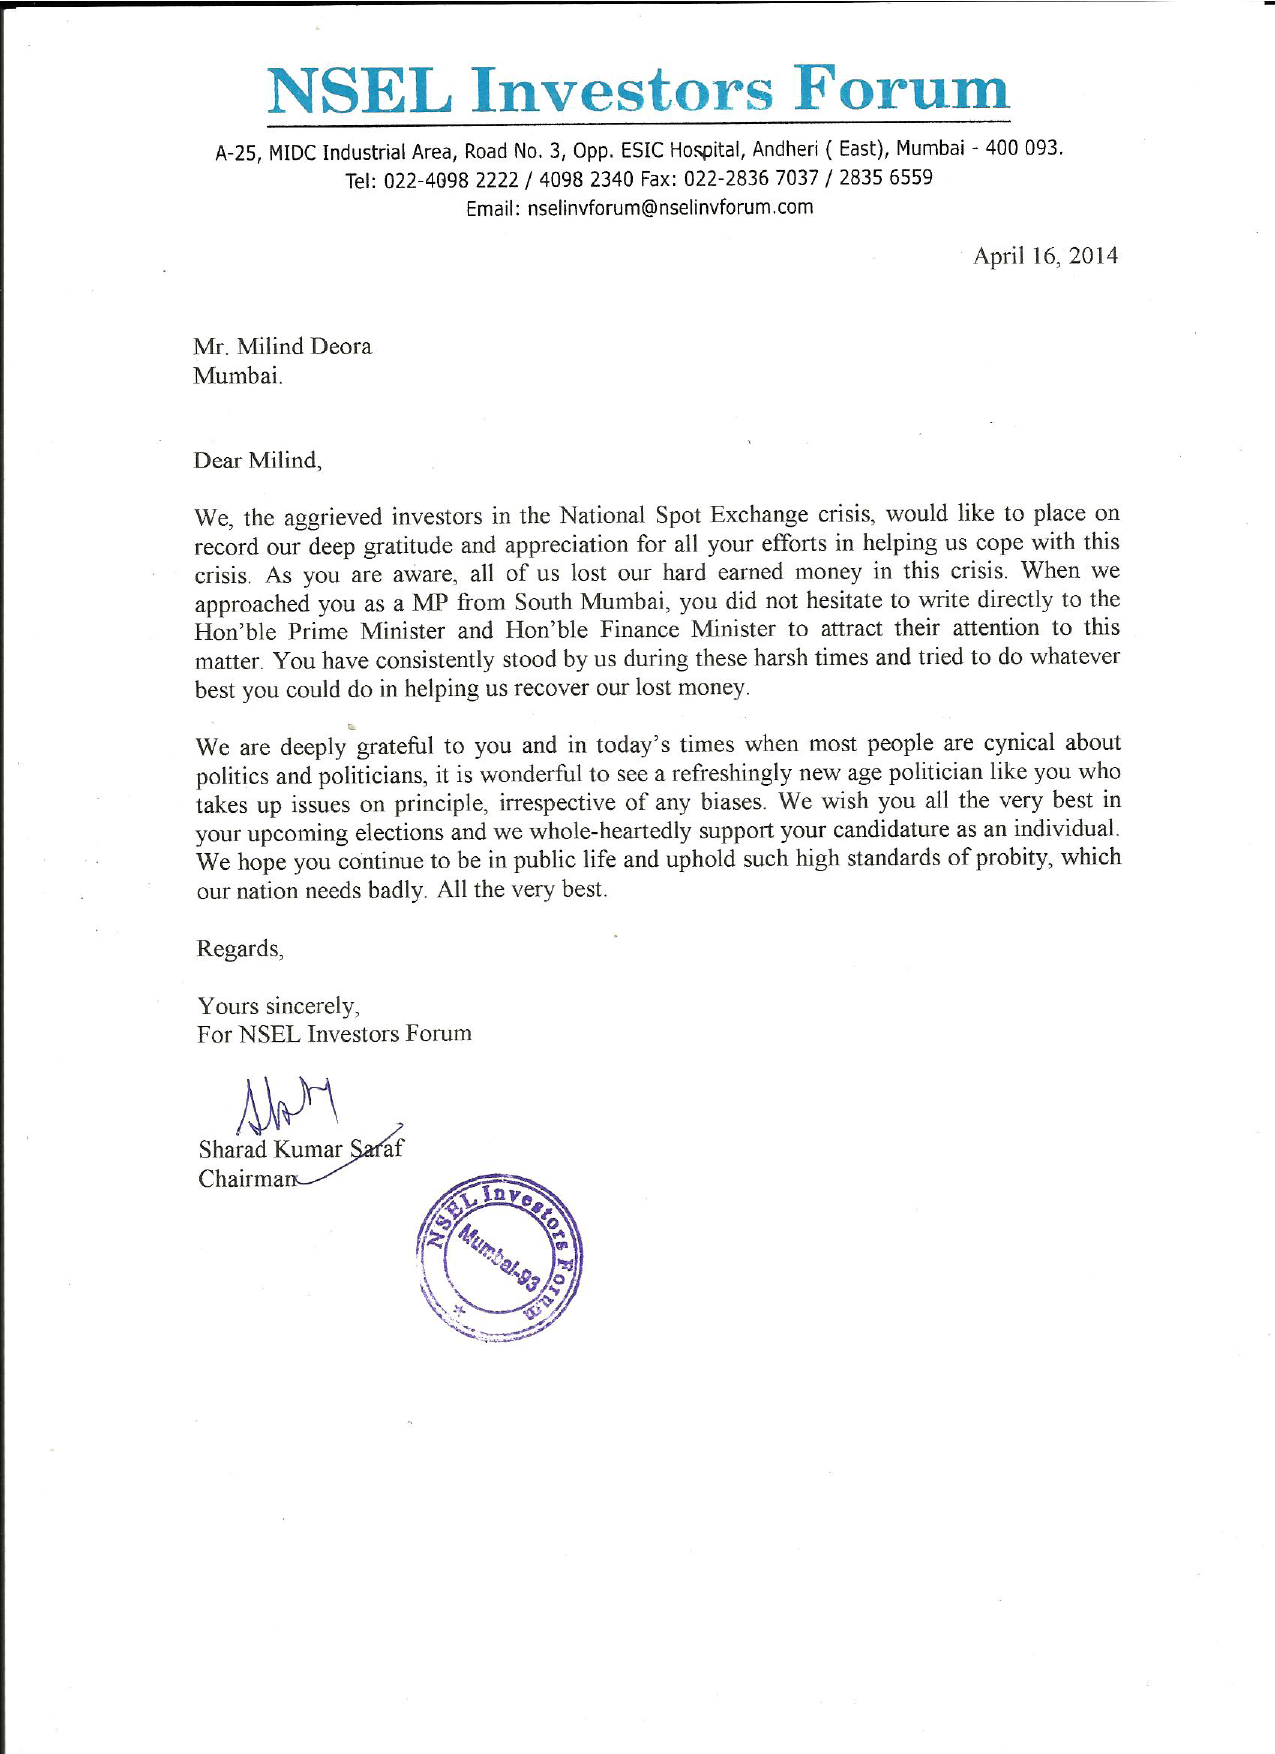 NSEL Letter to Mr. Milind Deora-01